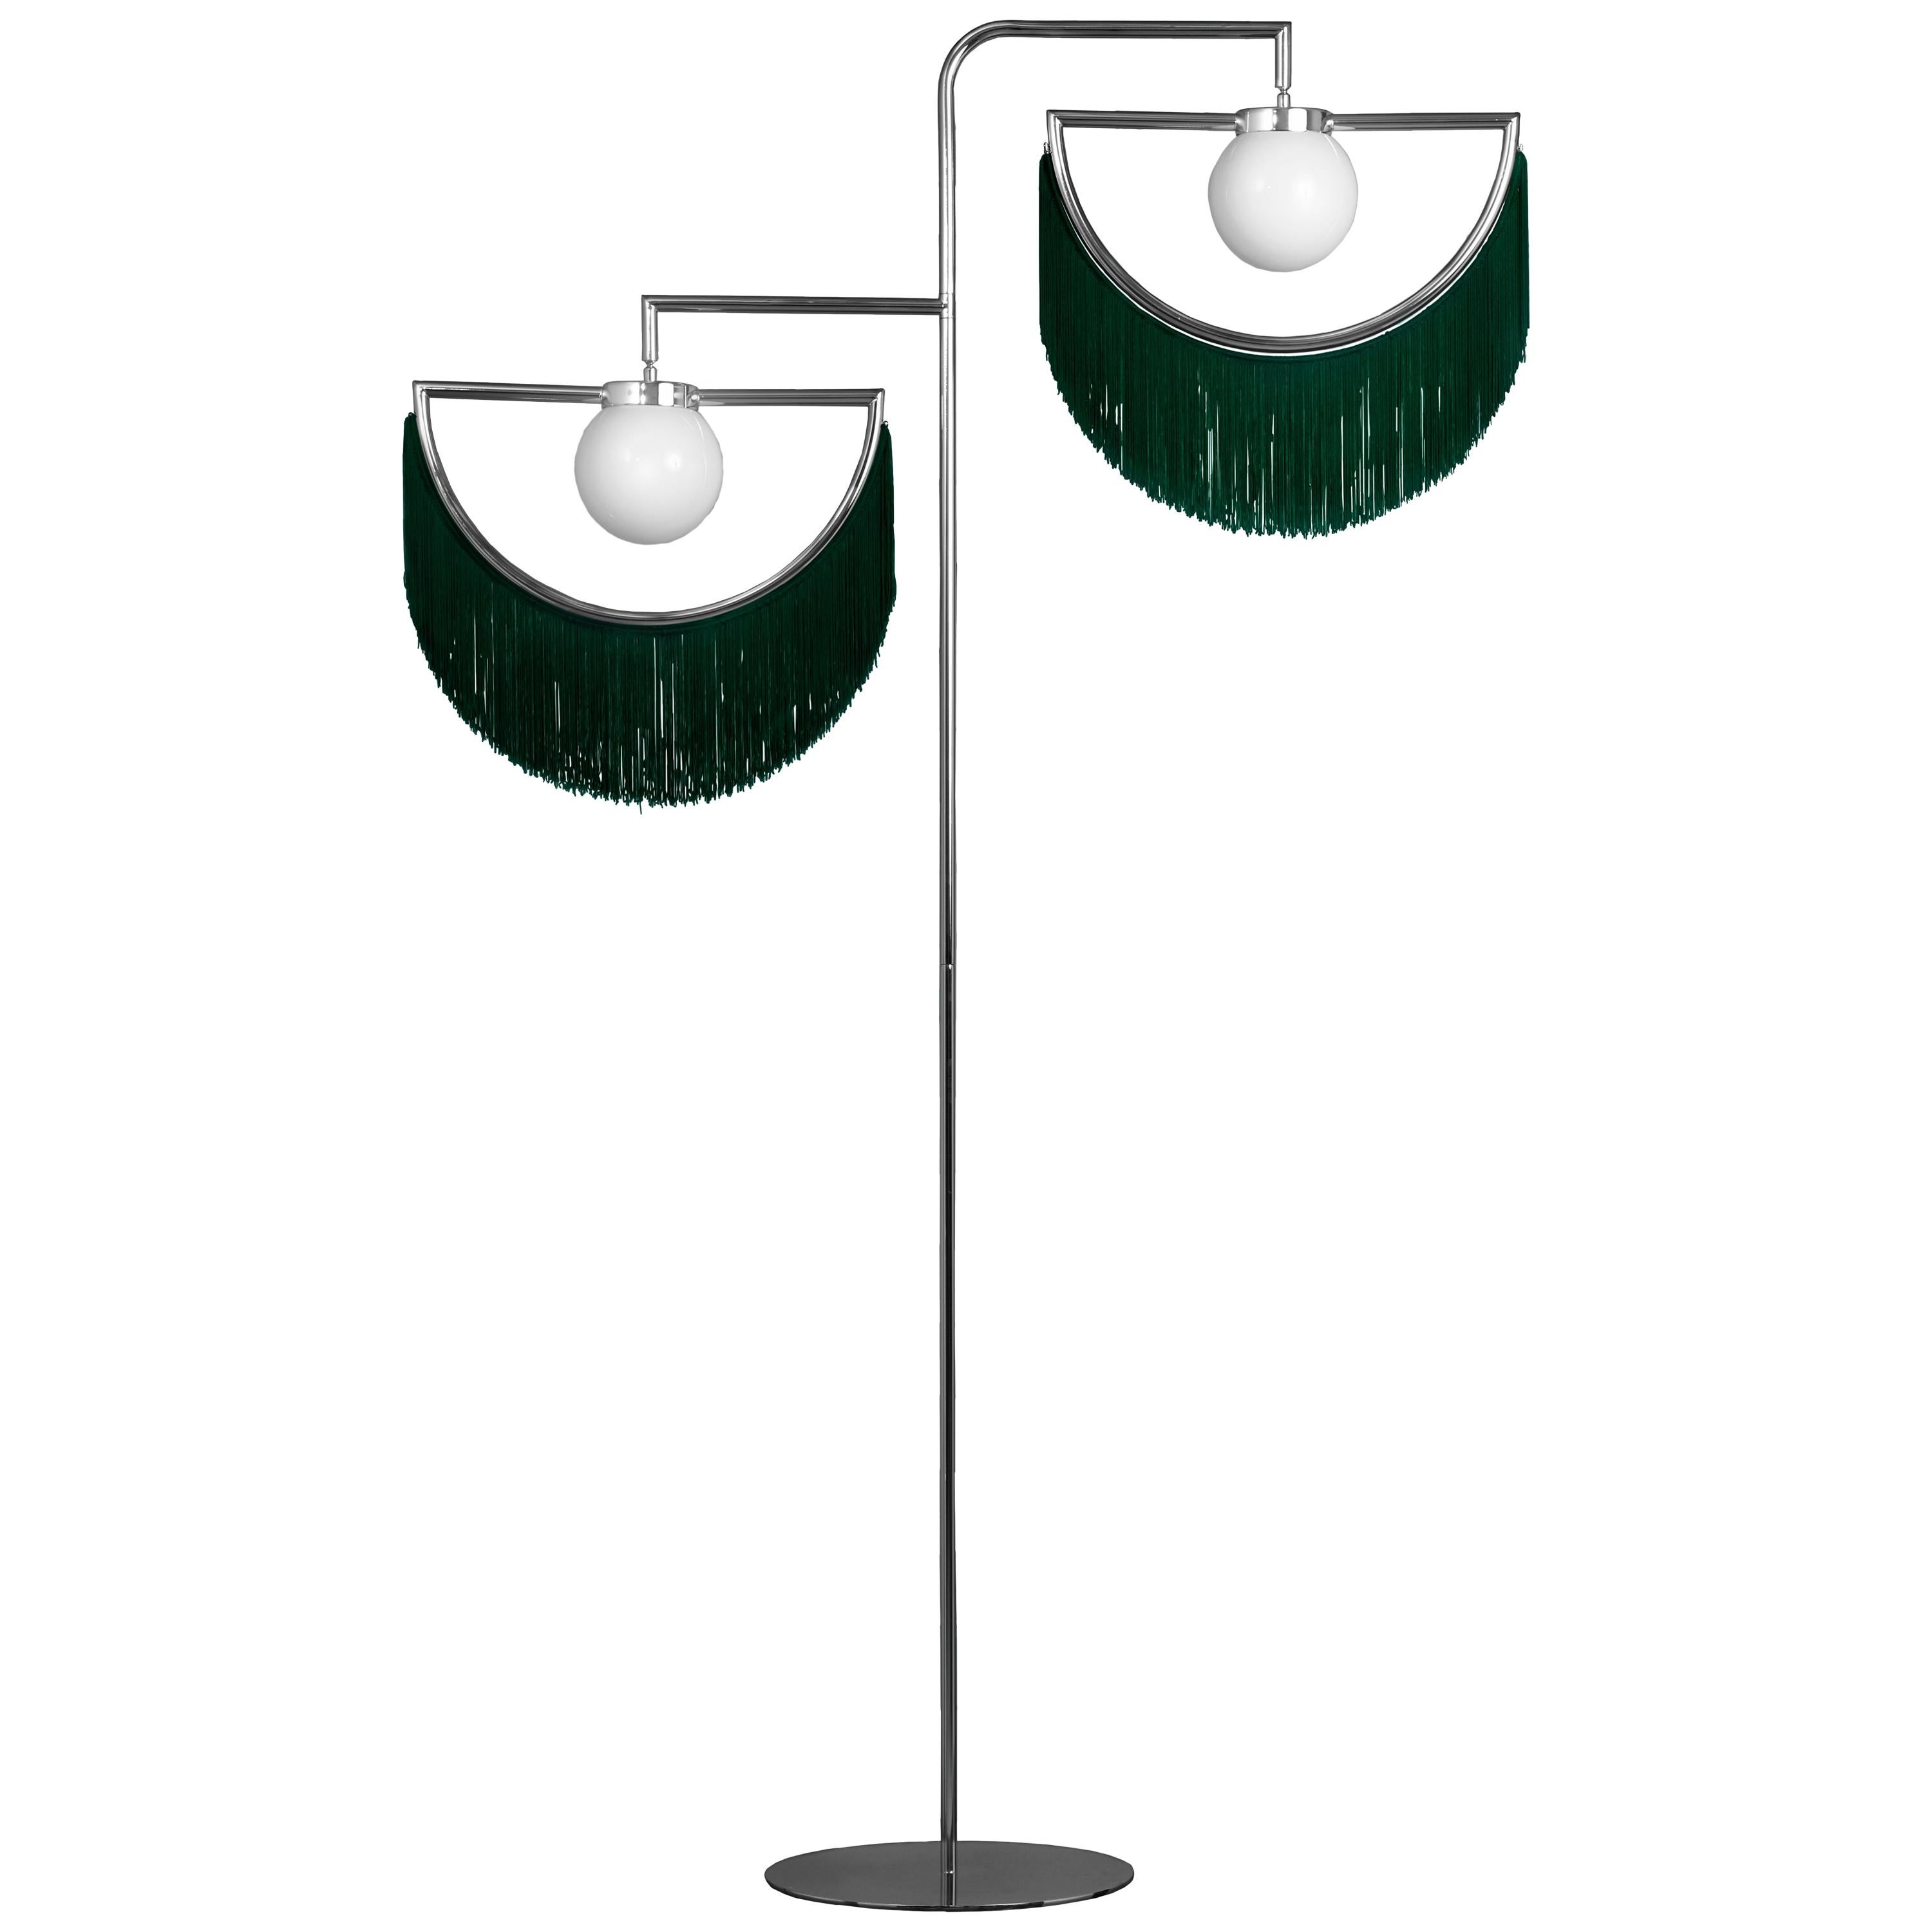 Wink Gold-Plated Floor Lamp Postmodernist Style with Green Fringes